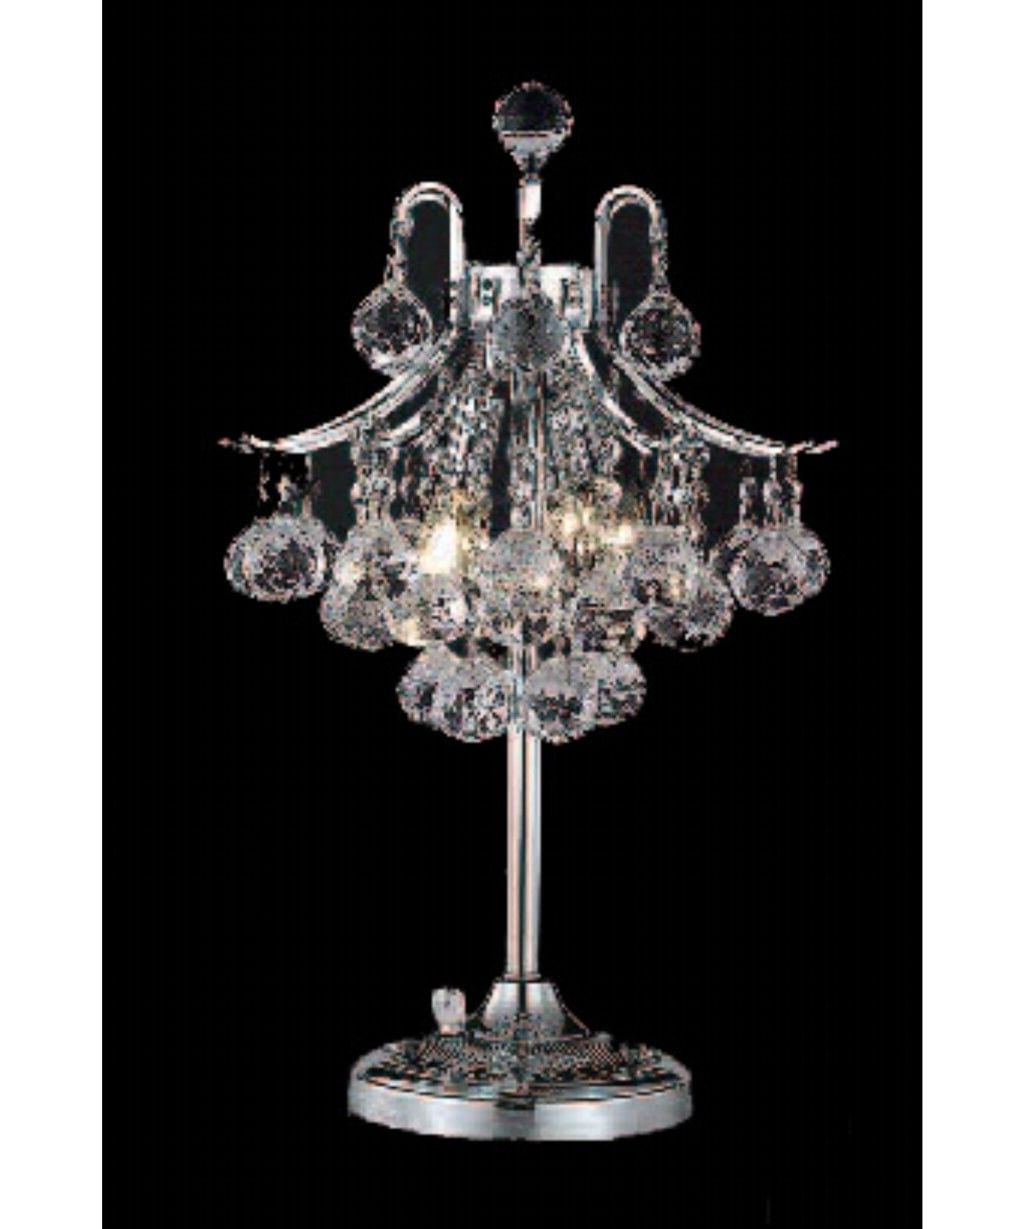 Well Known Lighting: Spectacular Mini Chandelier Table Lamp For Modern Living With Regard To Crystal Table Chandeliers (View 11 of 15)